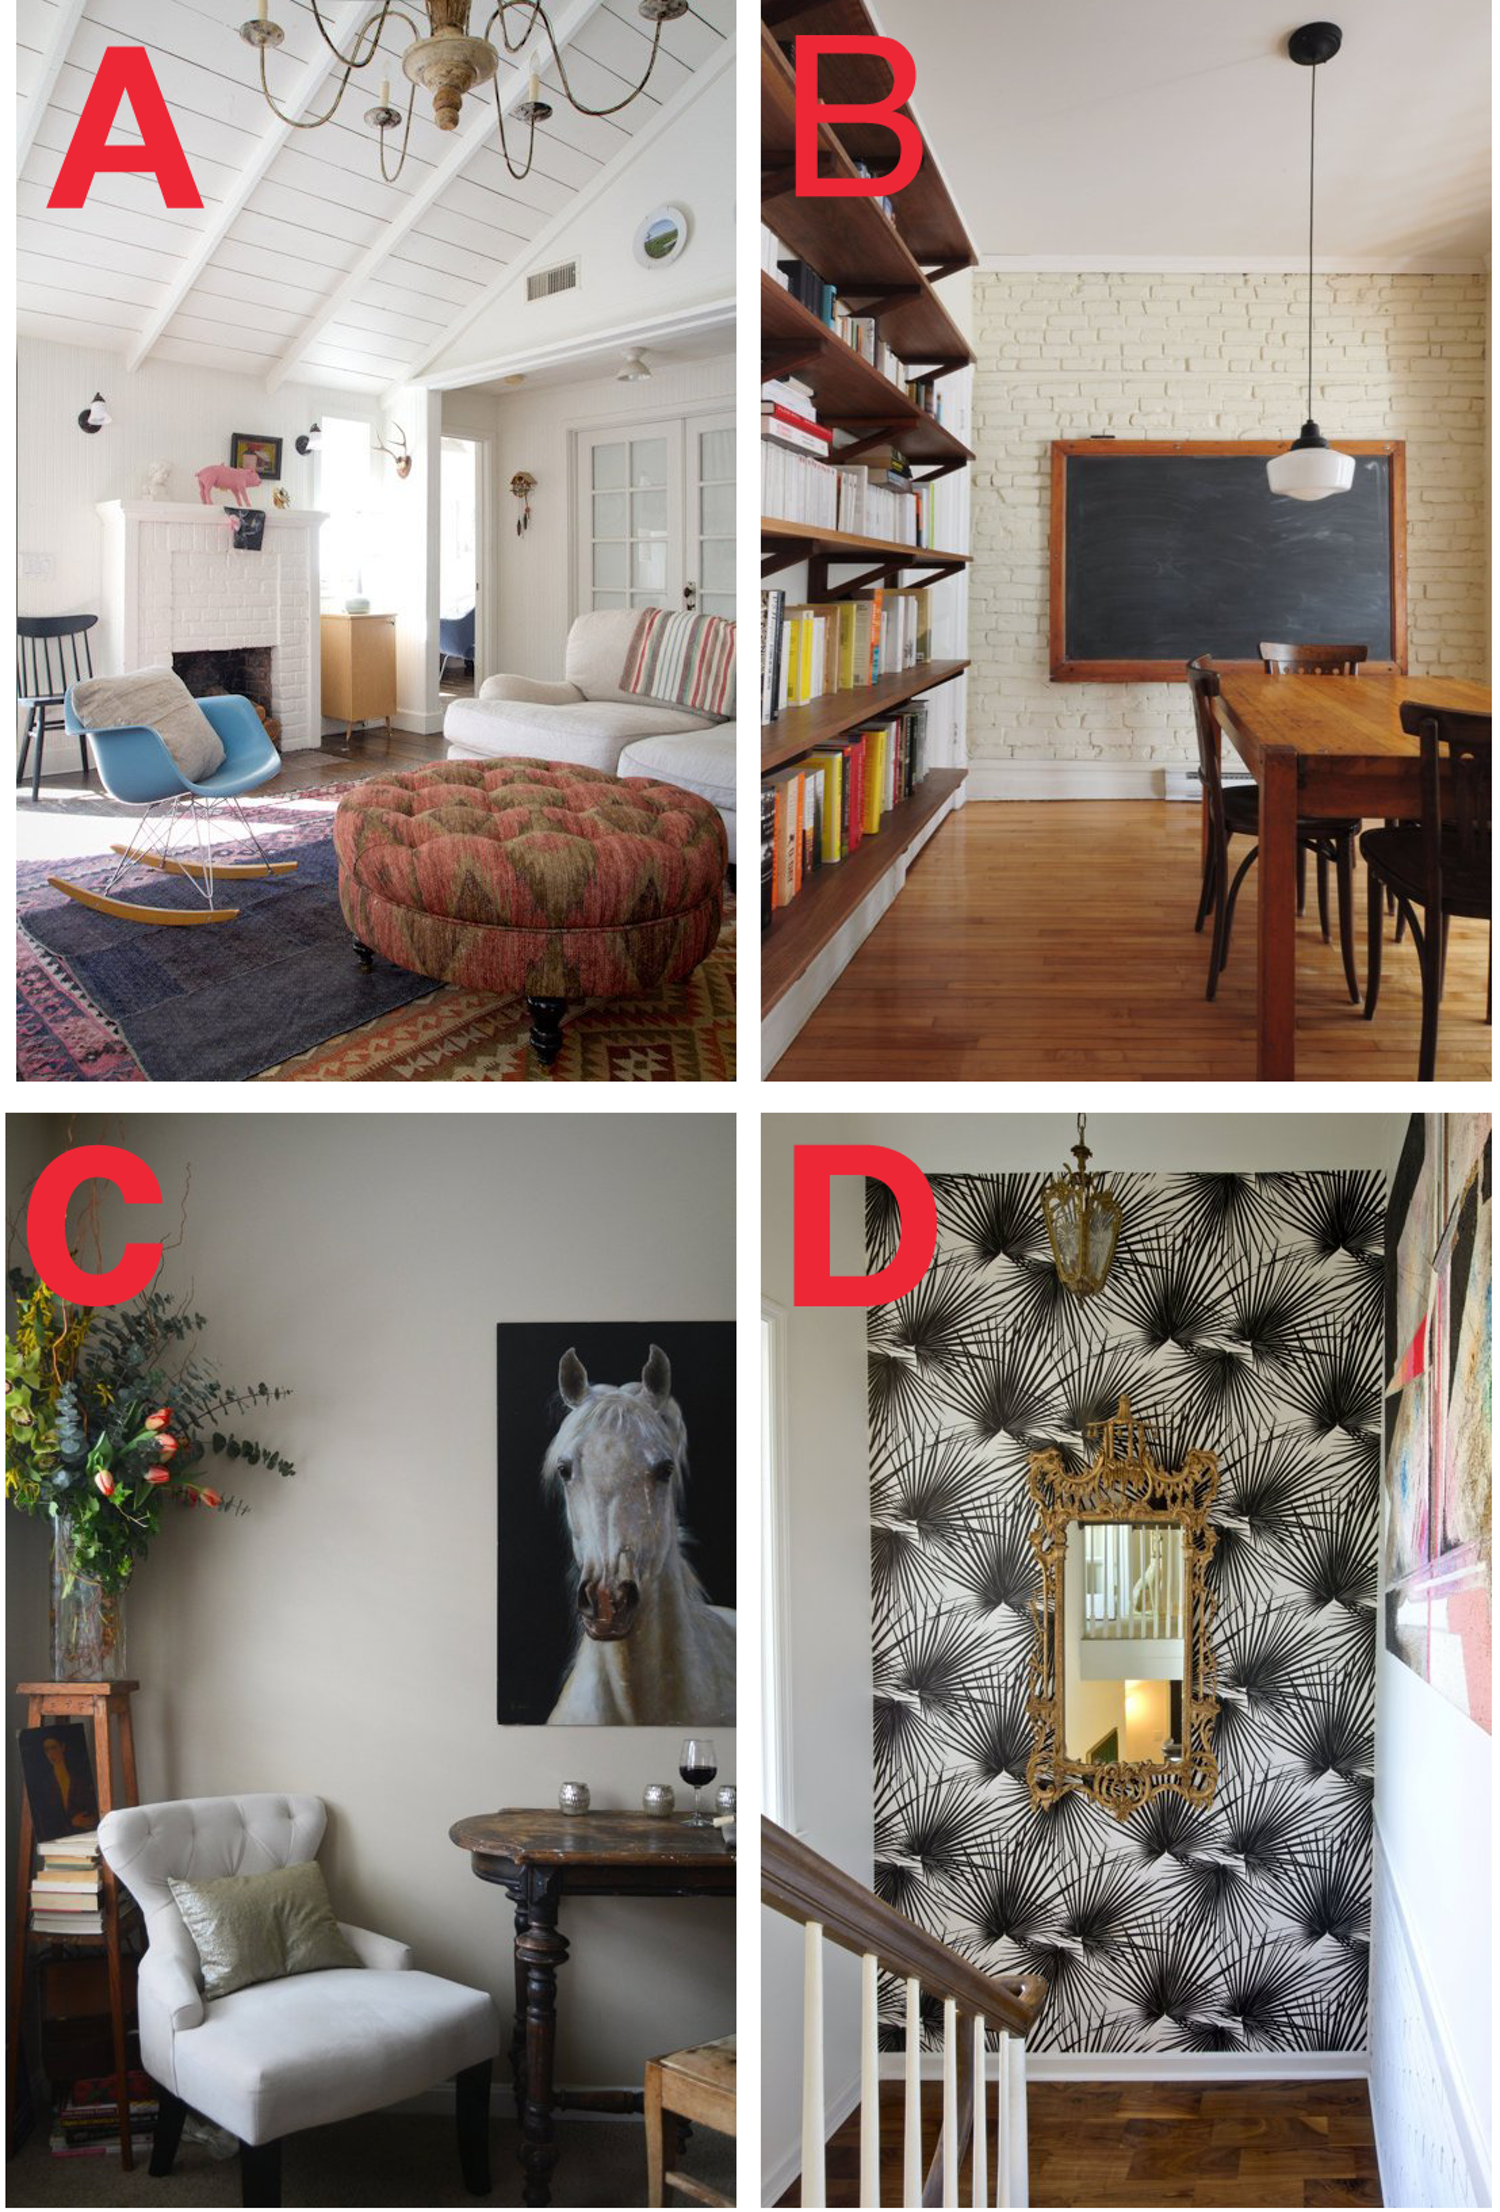 Home Decor Style Quiz - todoityourself.com